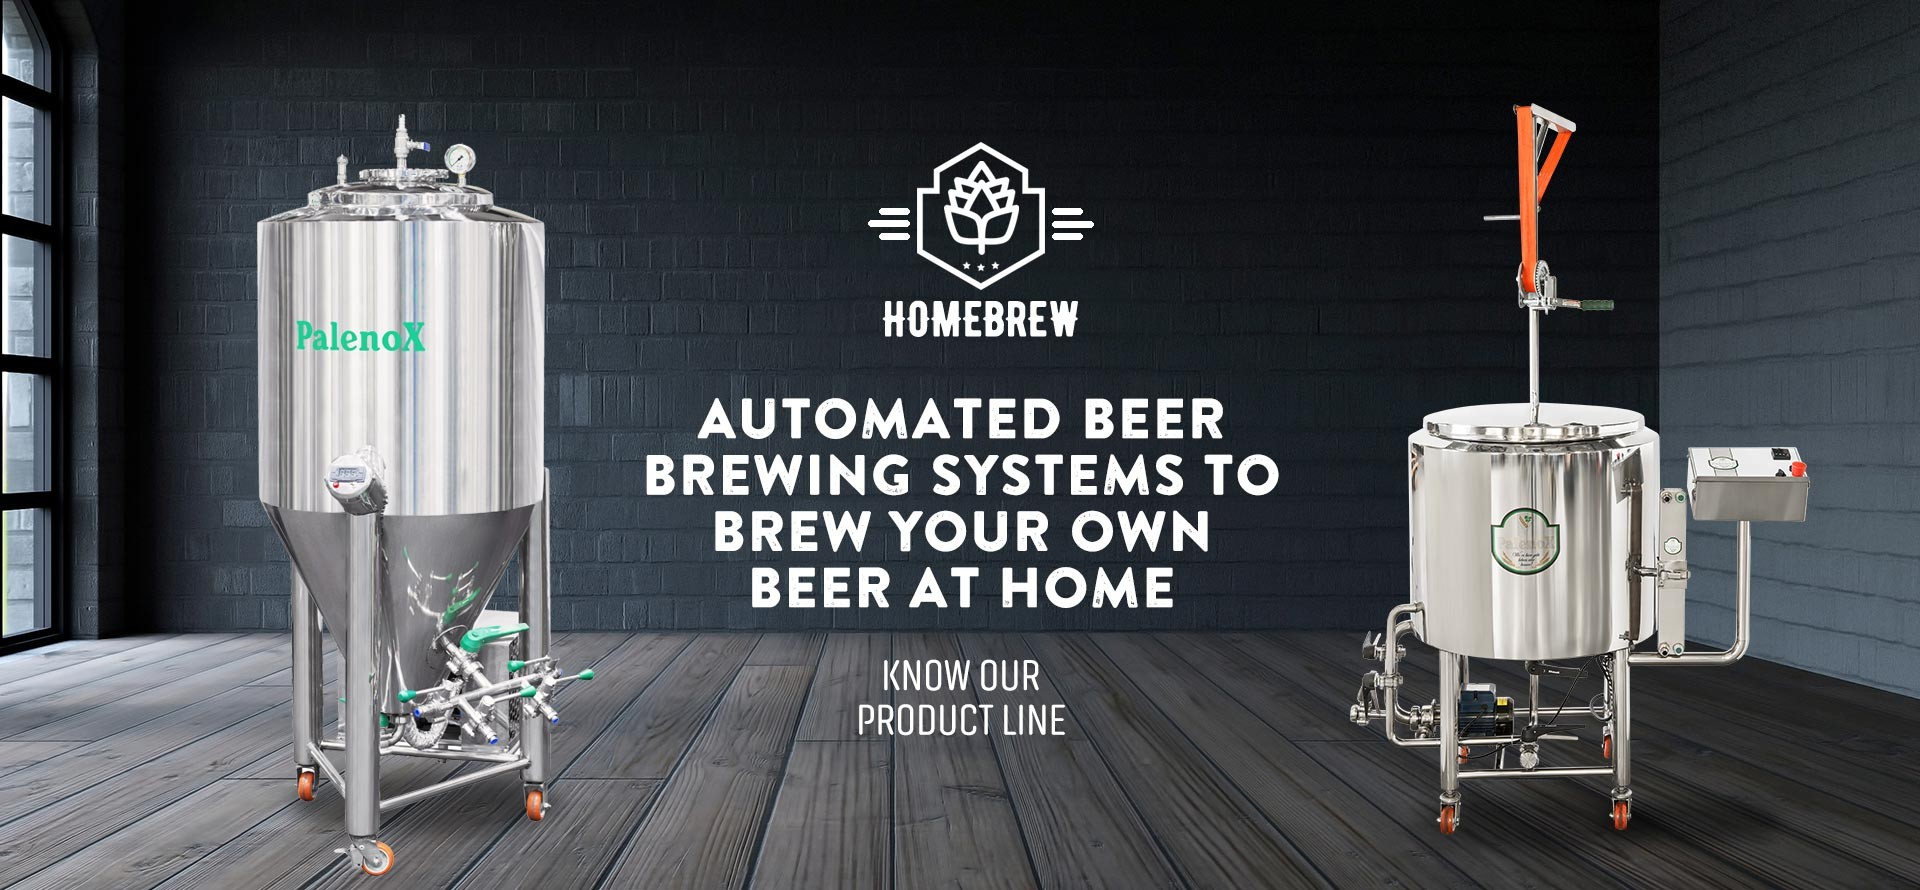 Palenox Automated Brewing Systems